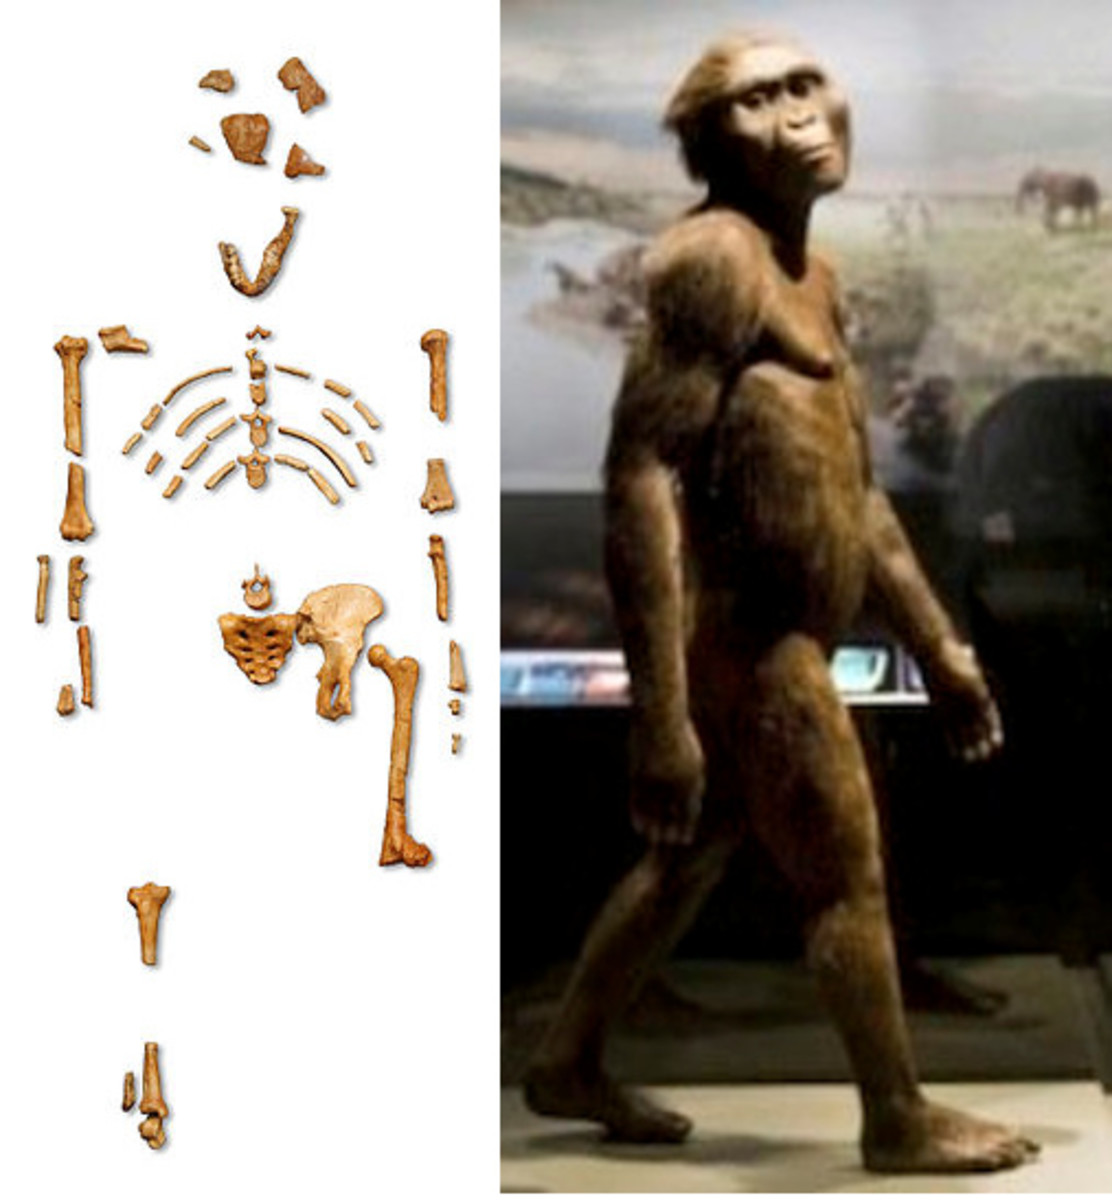 The picture of the bones from Lucy are from wikipedia. The picture of the recreated model of a walking Lucy is from https://answersingenesis.org/human-evolution/lucy/last-stop-before-returning-home/ .